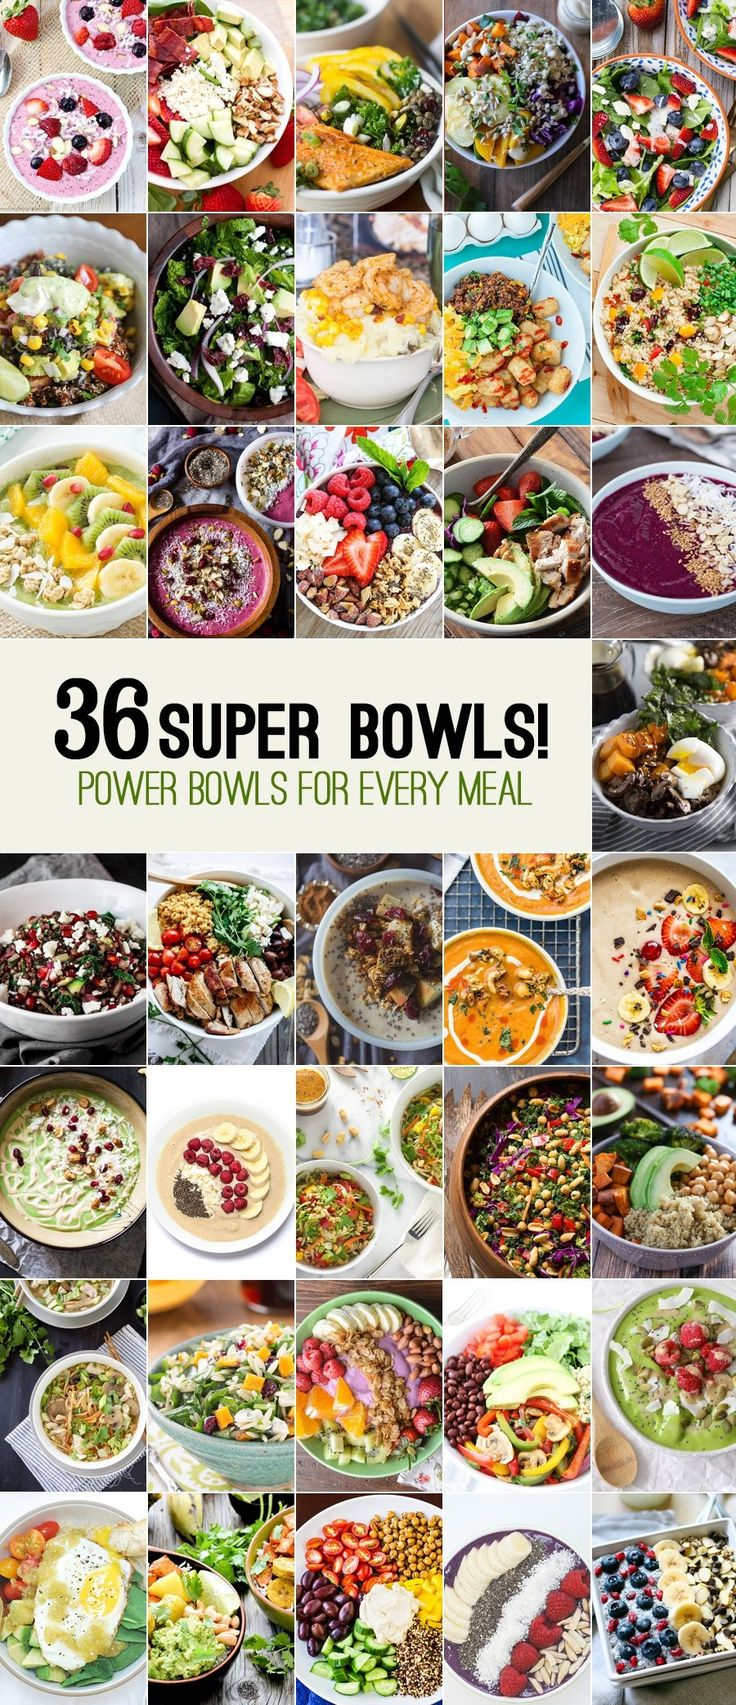 Eat Stop Eat To Loss Weight - Heres a collection of 36 super bowls (more like power bowls) to get you pumped and energized for game day. Whether youre looking for a roasted root vegetable buddha bowl, a breakfast smoothie bowl, or a fajita quinoa bowl, this list has you covered. Whatever your goal, cheers to eating healthier, greener, or more colorful! - In Just One Day This Simple Strategy Frees You From Complicated Diet Rules - And Eliminates Rebound Weight Gain